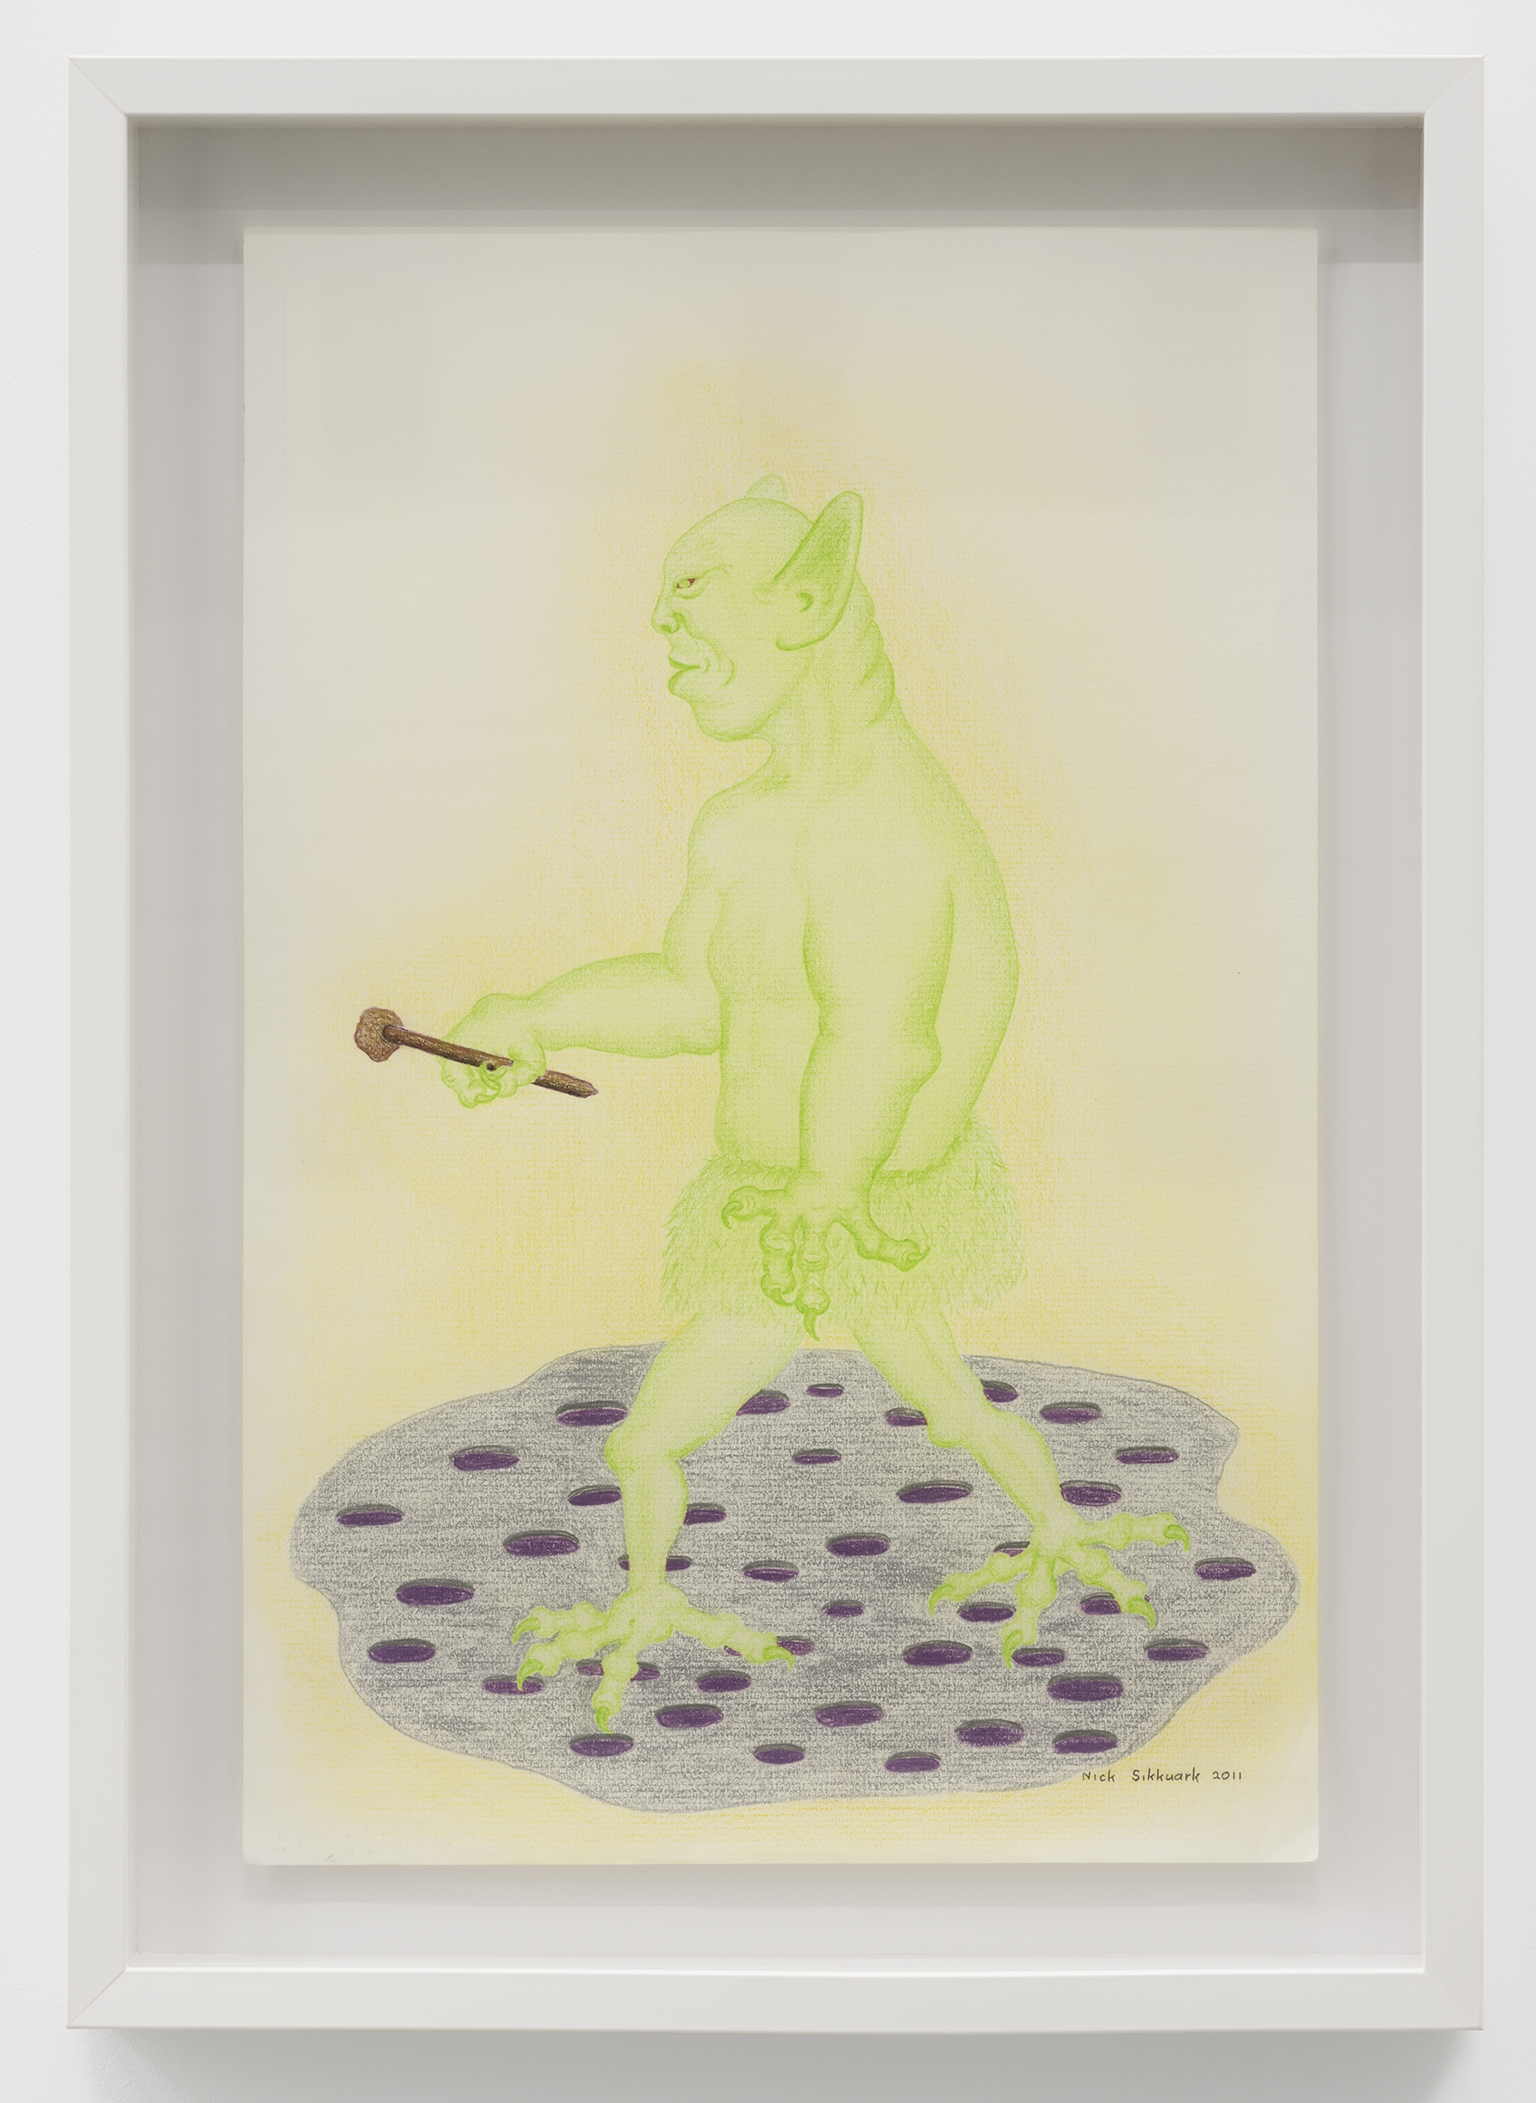 Nick Sikkuark, untitled, 2011, coloured pencil on paper, 16 x 12 in. (41 x 29 cm) by